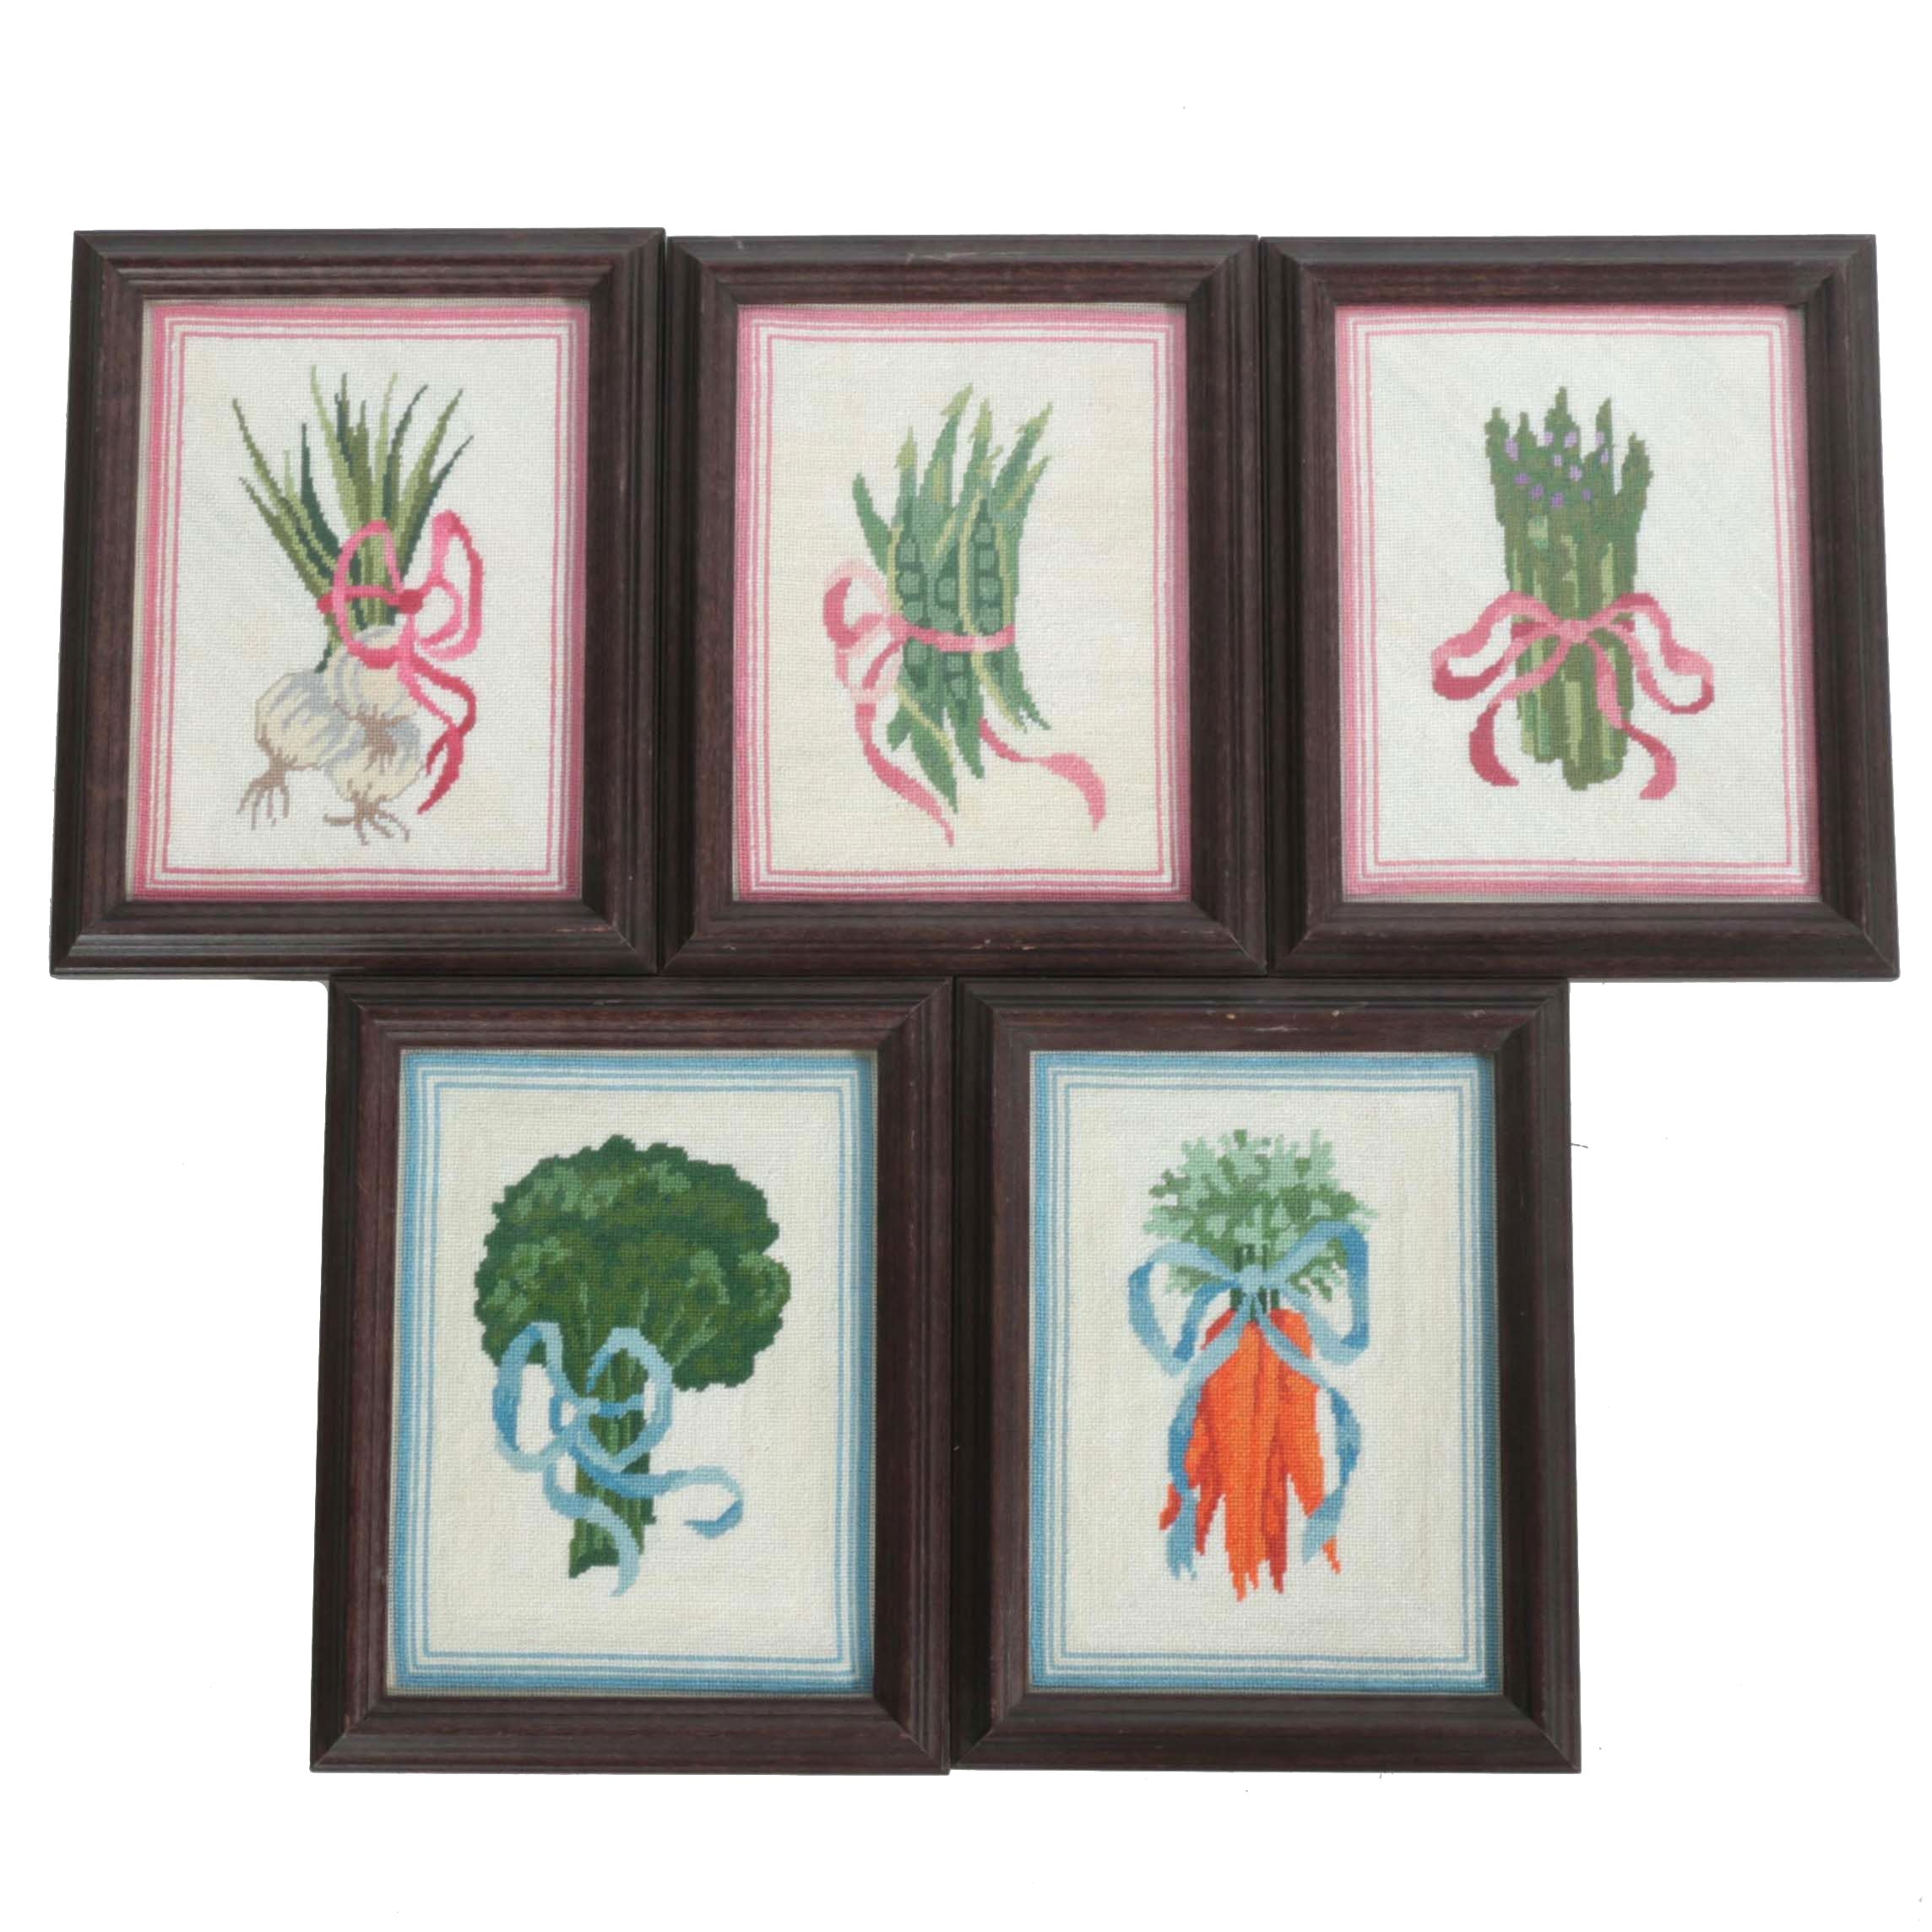 Five Embroidered Images of Vegetables